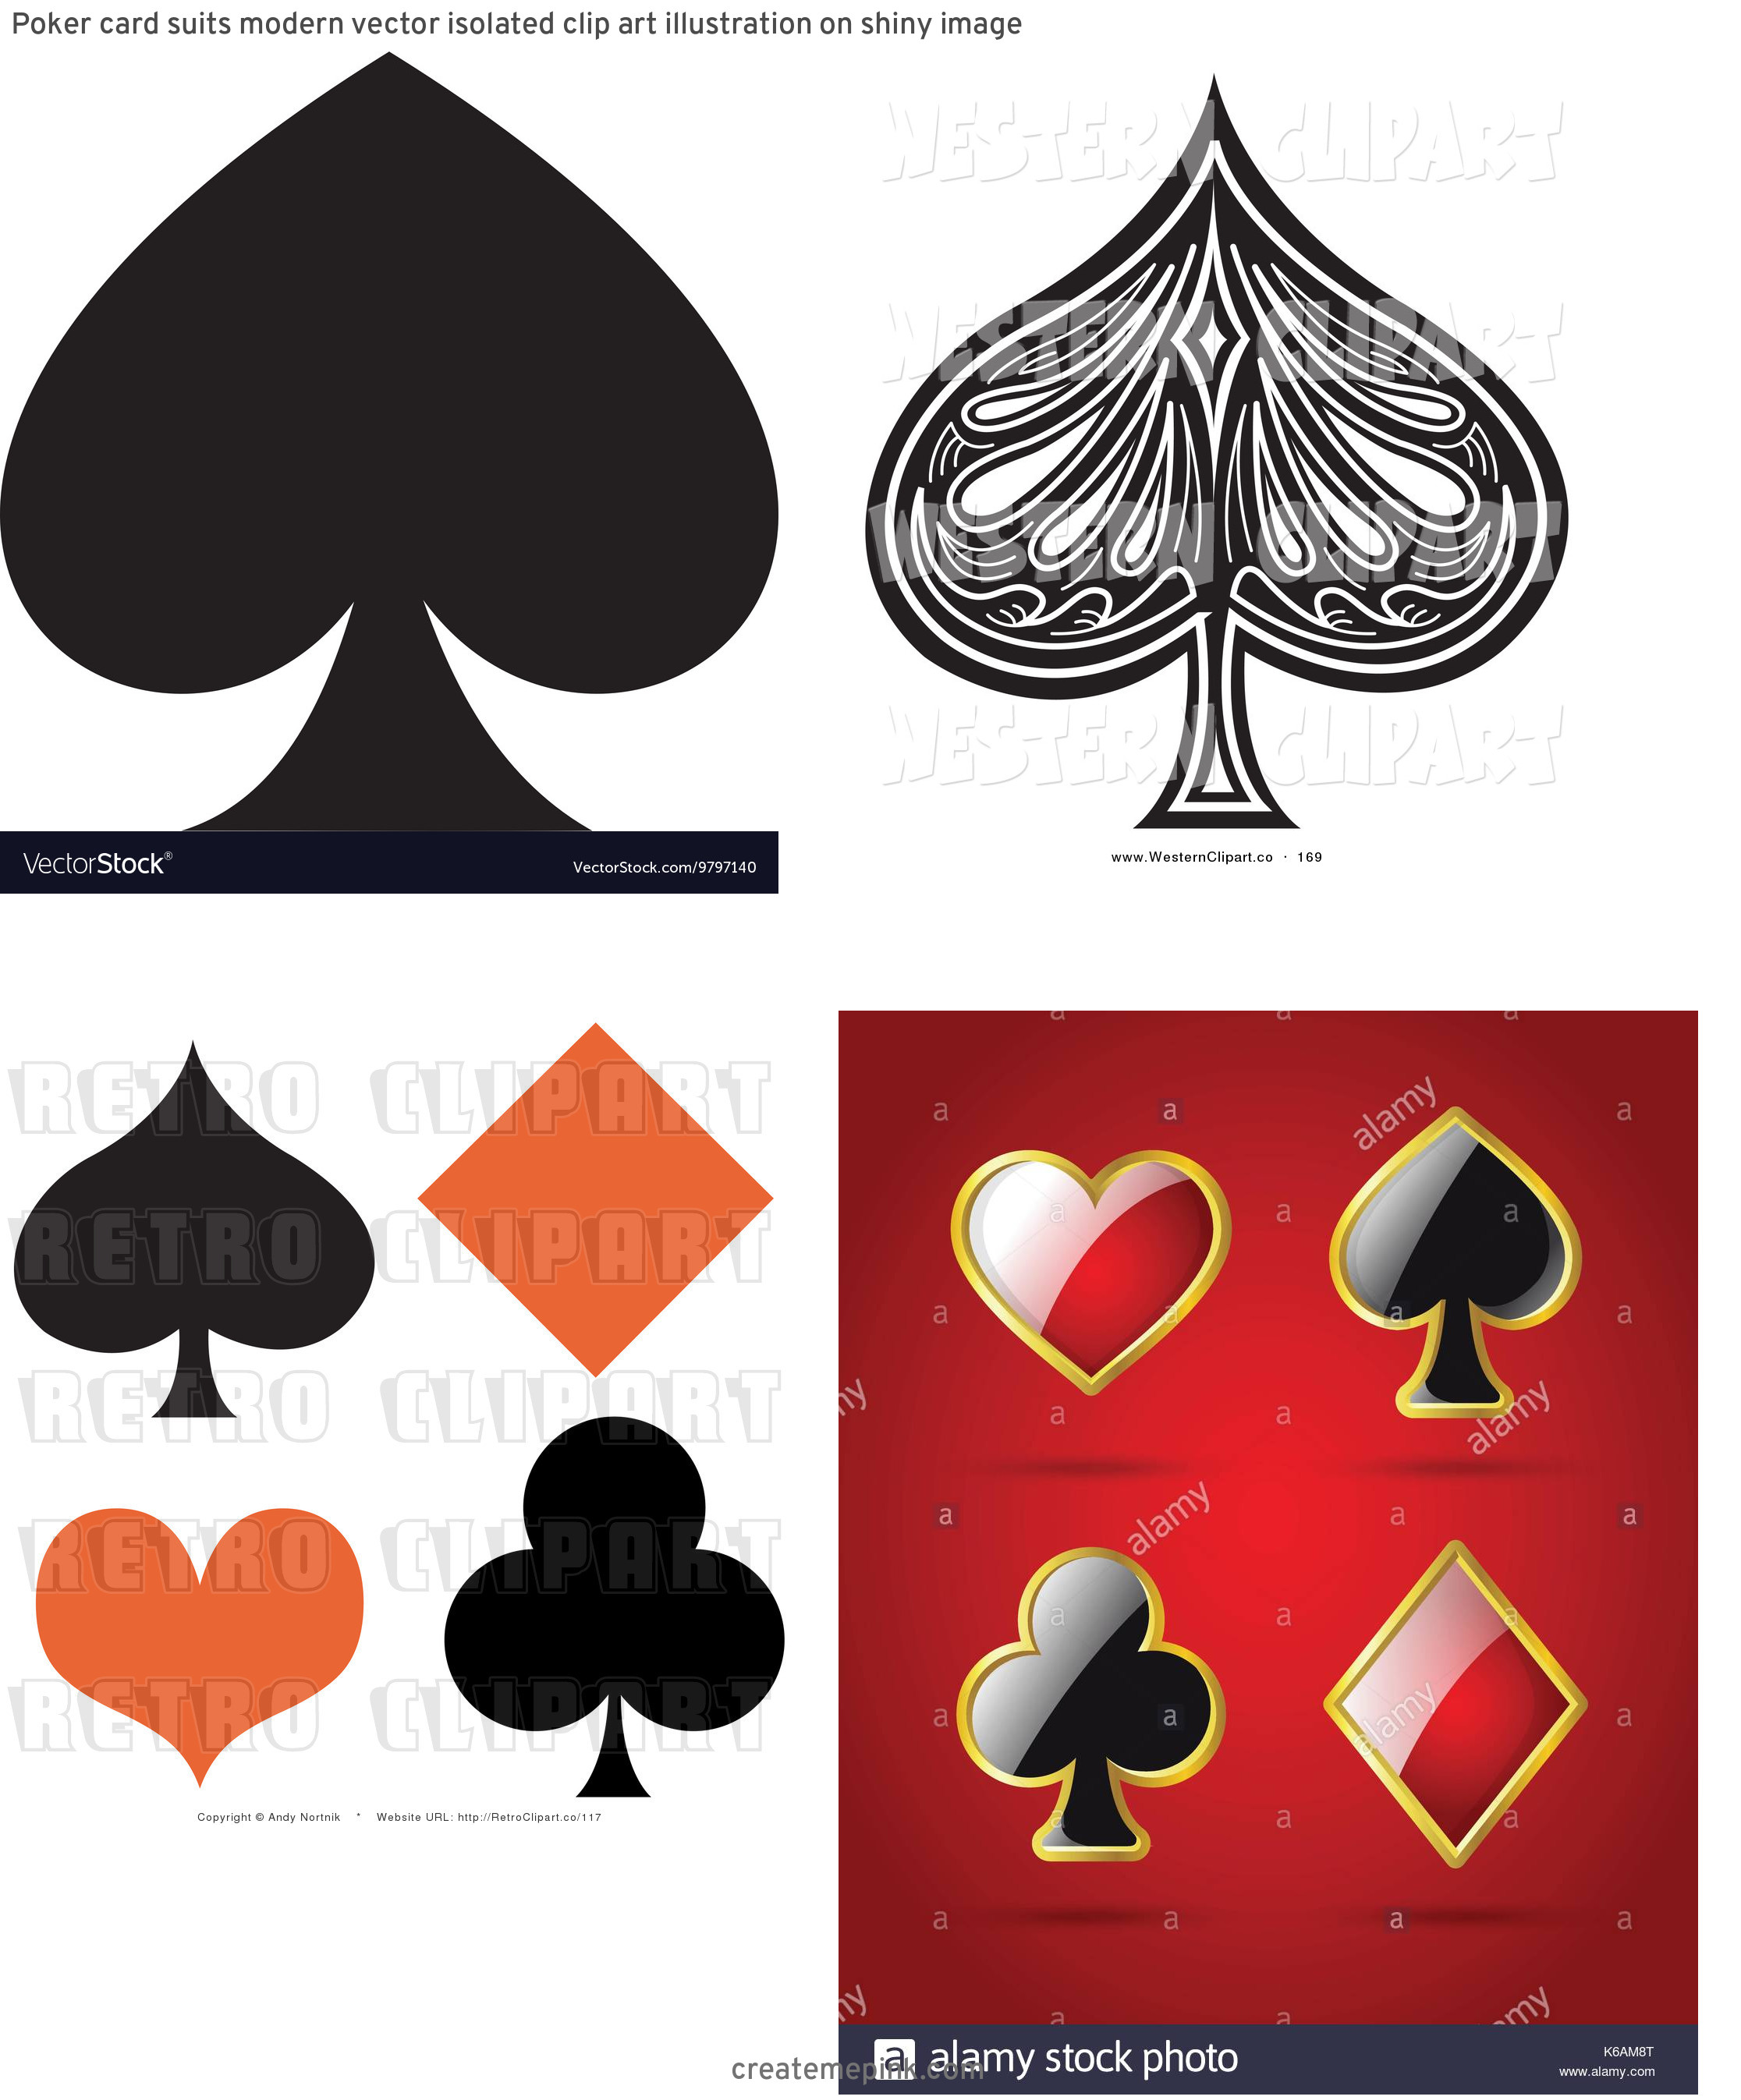 Spade Vector Clip Art: Poker Card Suits Modern Vector Isolated Clip Art Illustration On Shiny Image